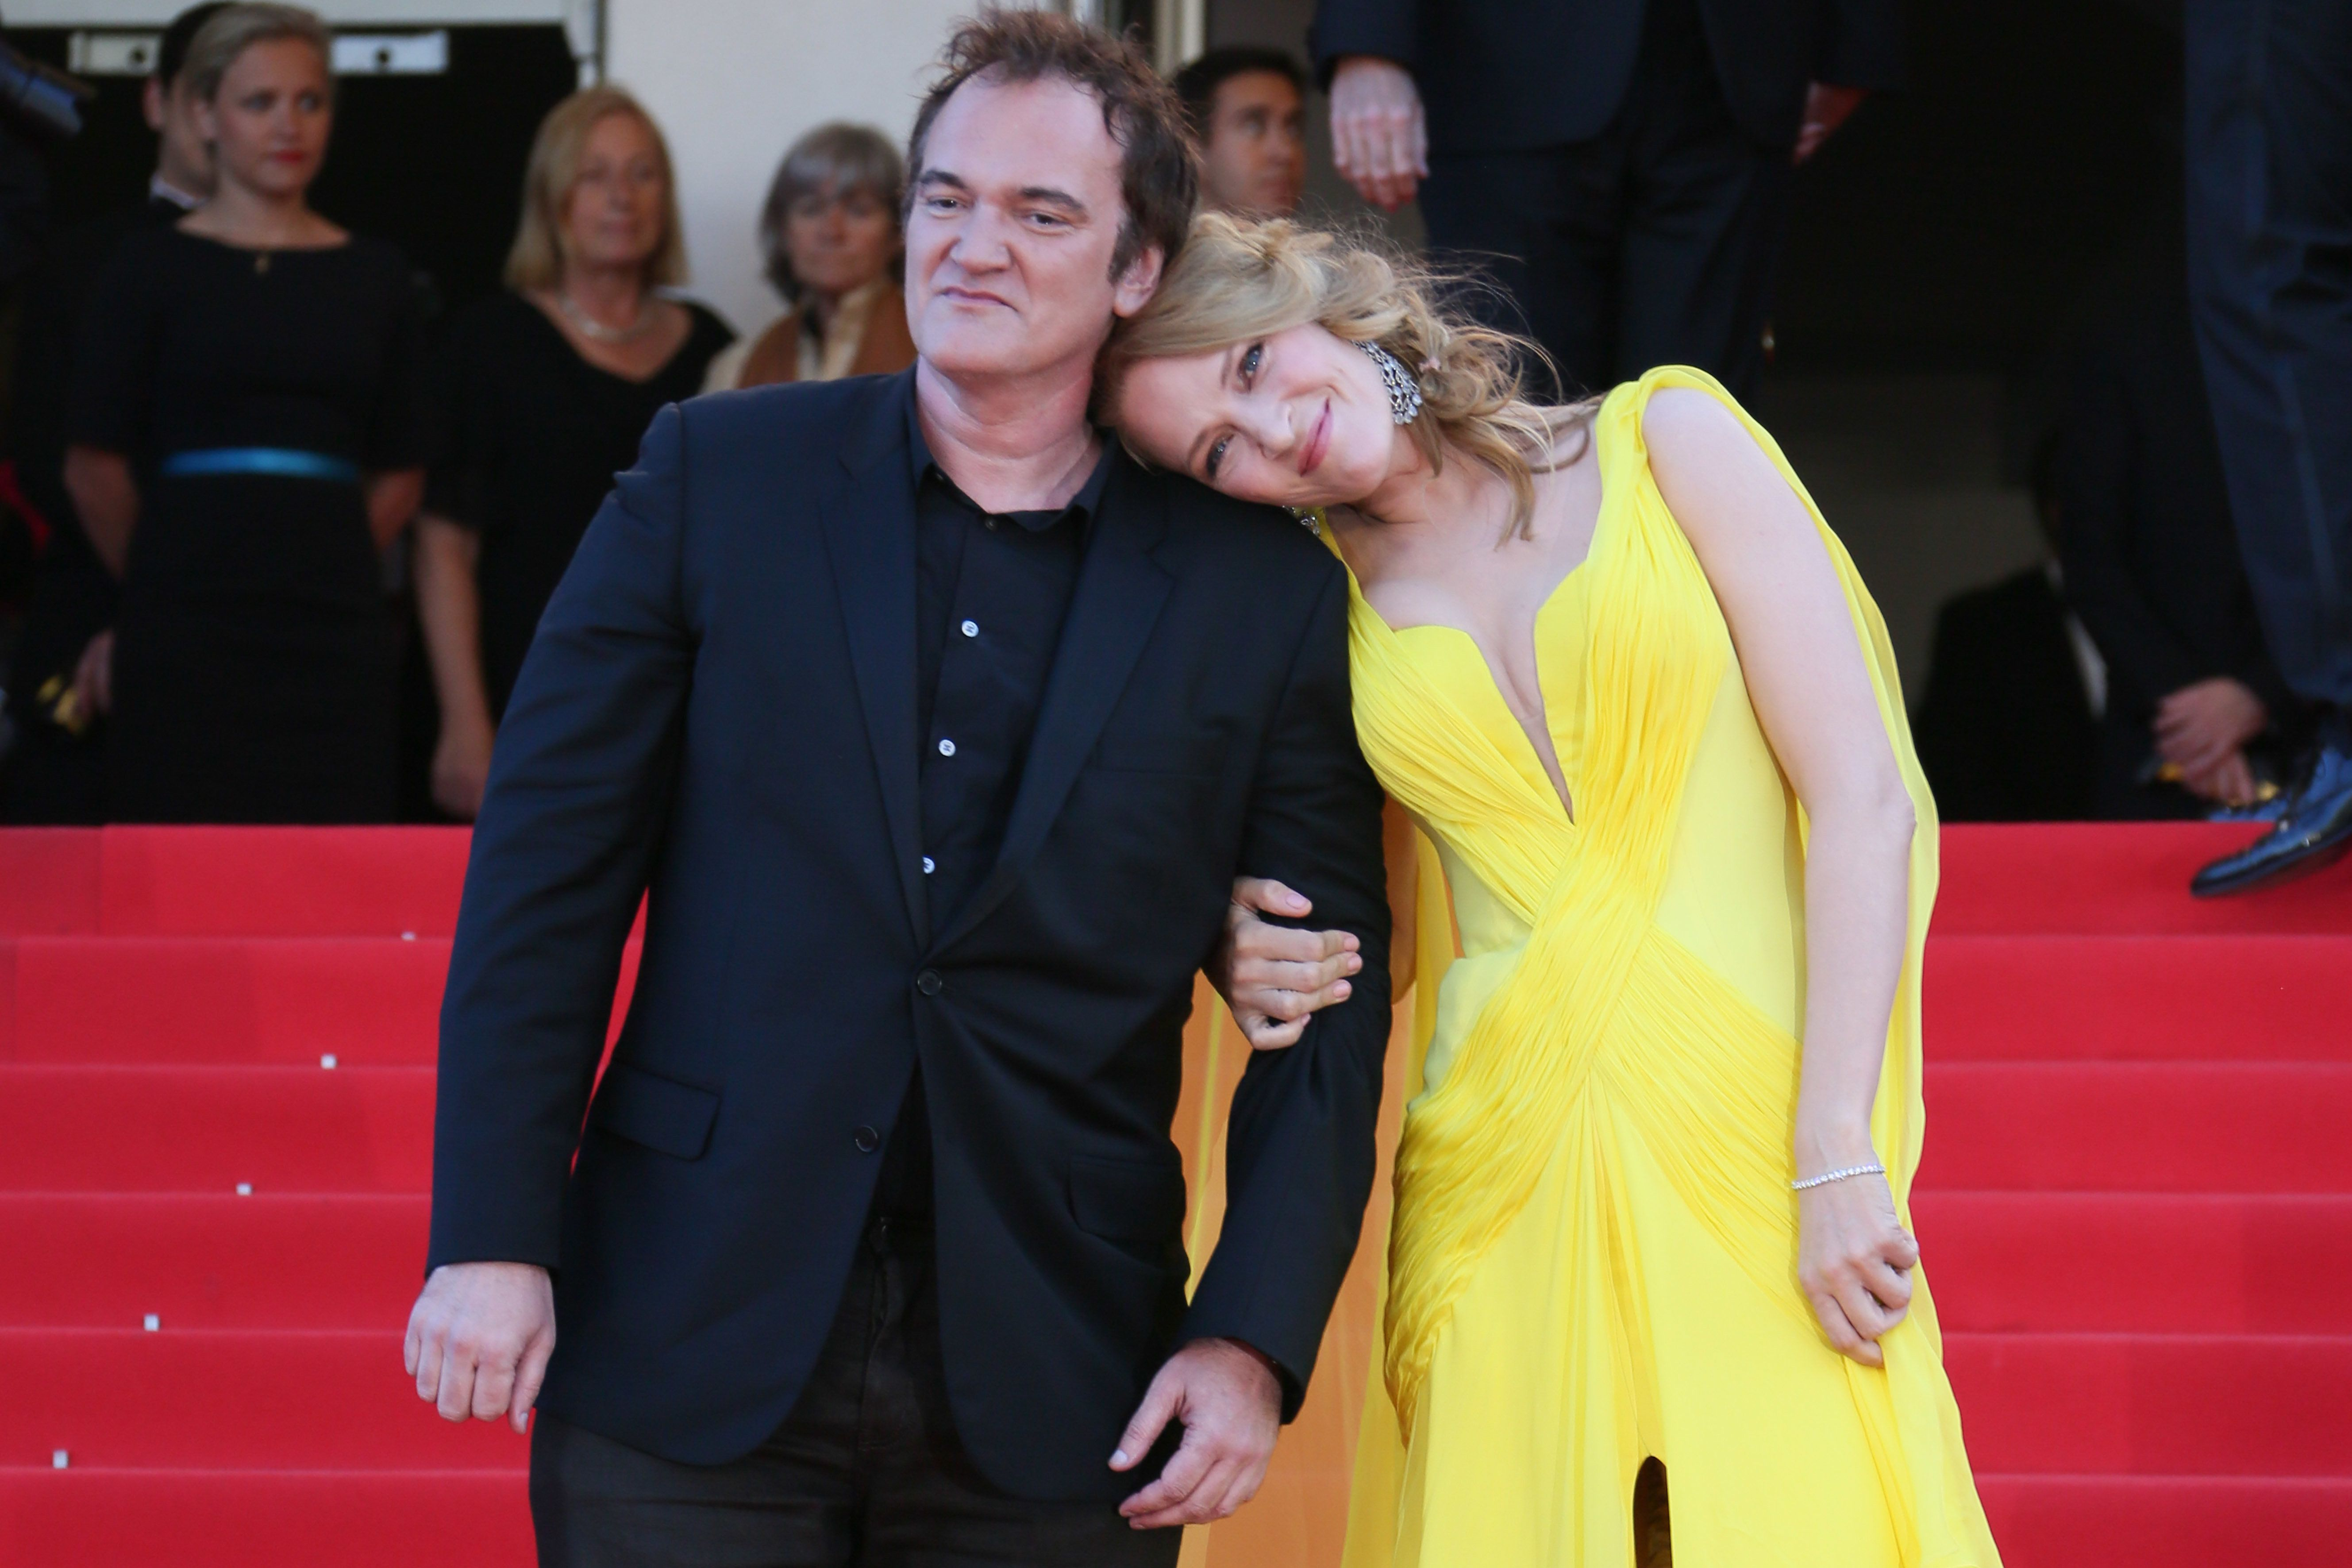 CANNES, FRANCE - MAY 23:  Quentin Tarantino and Uma Thurman attend the 'Clouds Of Sils Maria' premiere at the 67th Annual Cannes Film Festival on May 23, 2014 in Cannes, France.  (Photo by Tony Barson/FilmMagic)